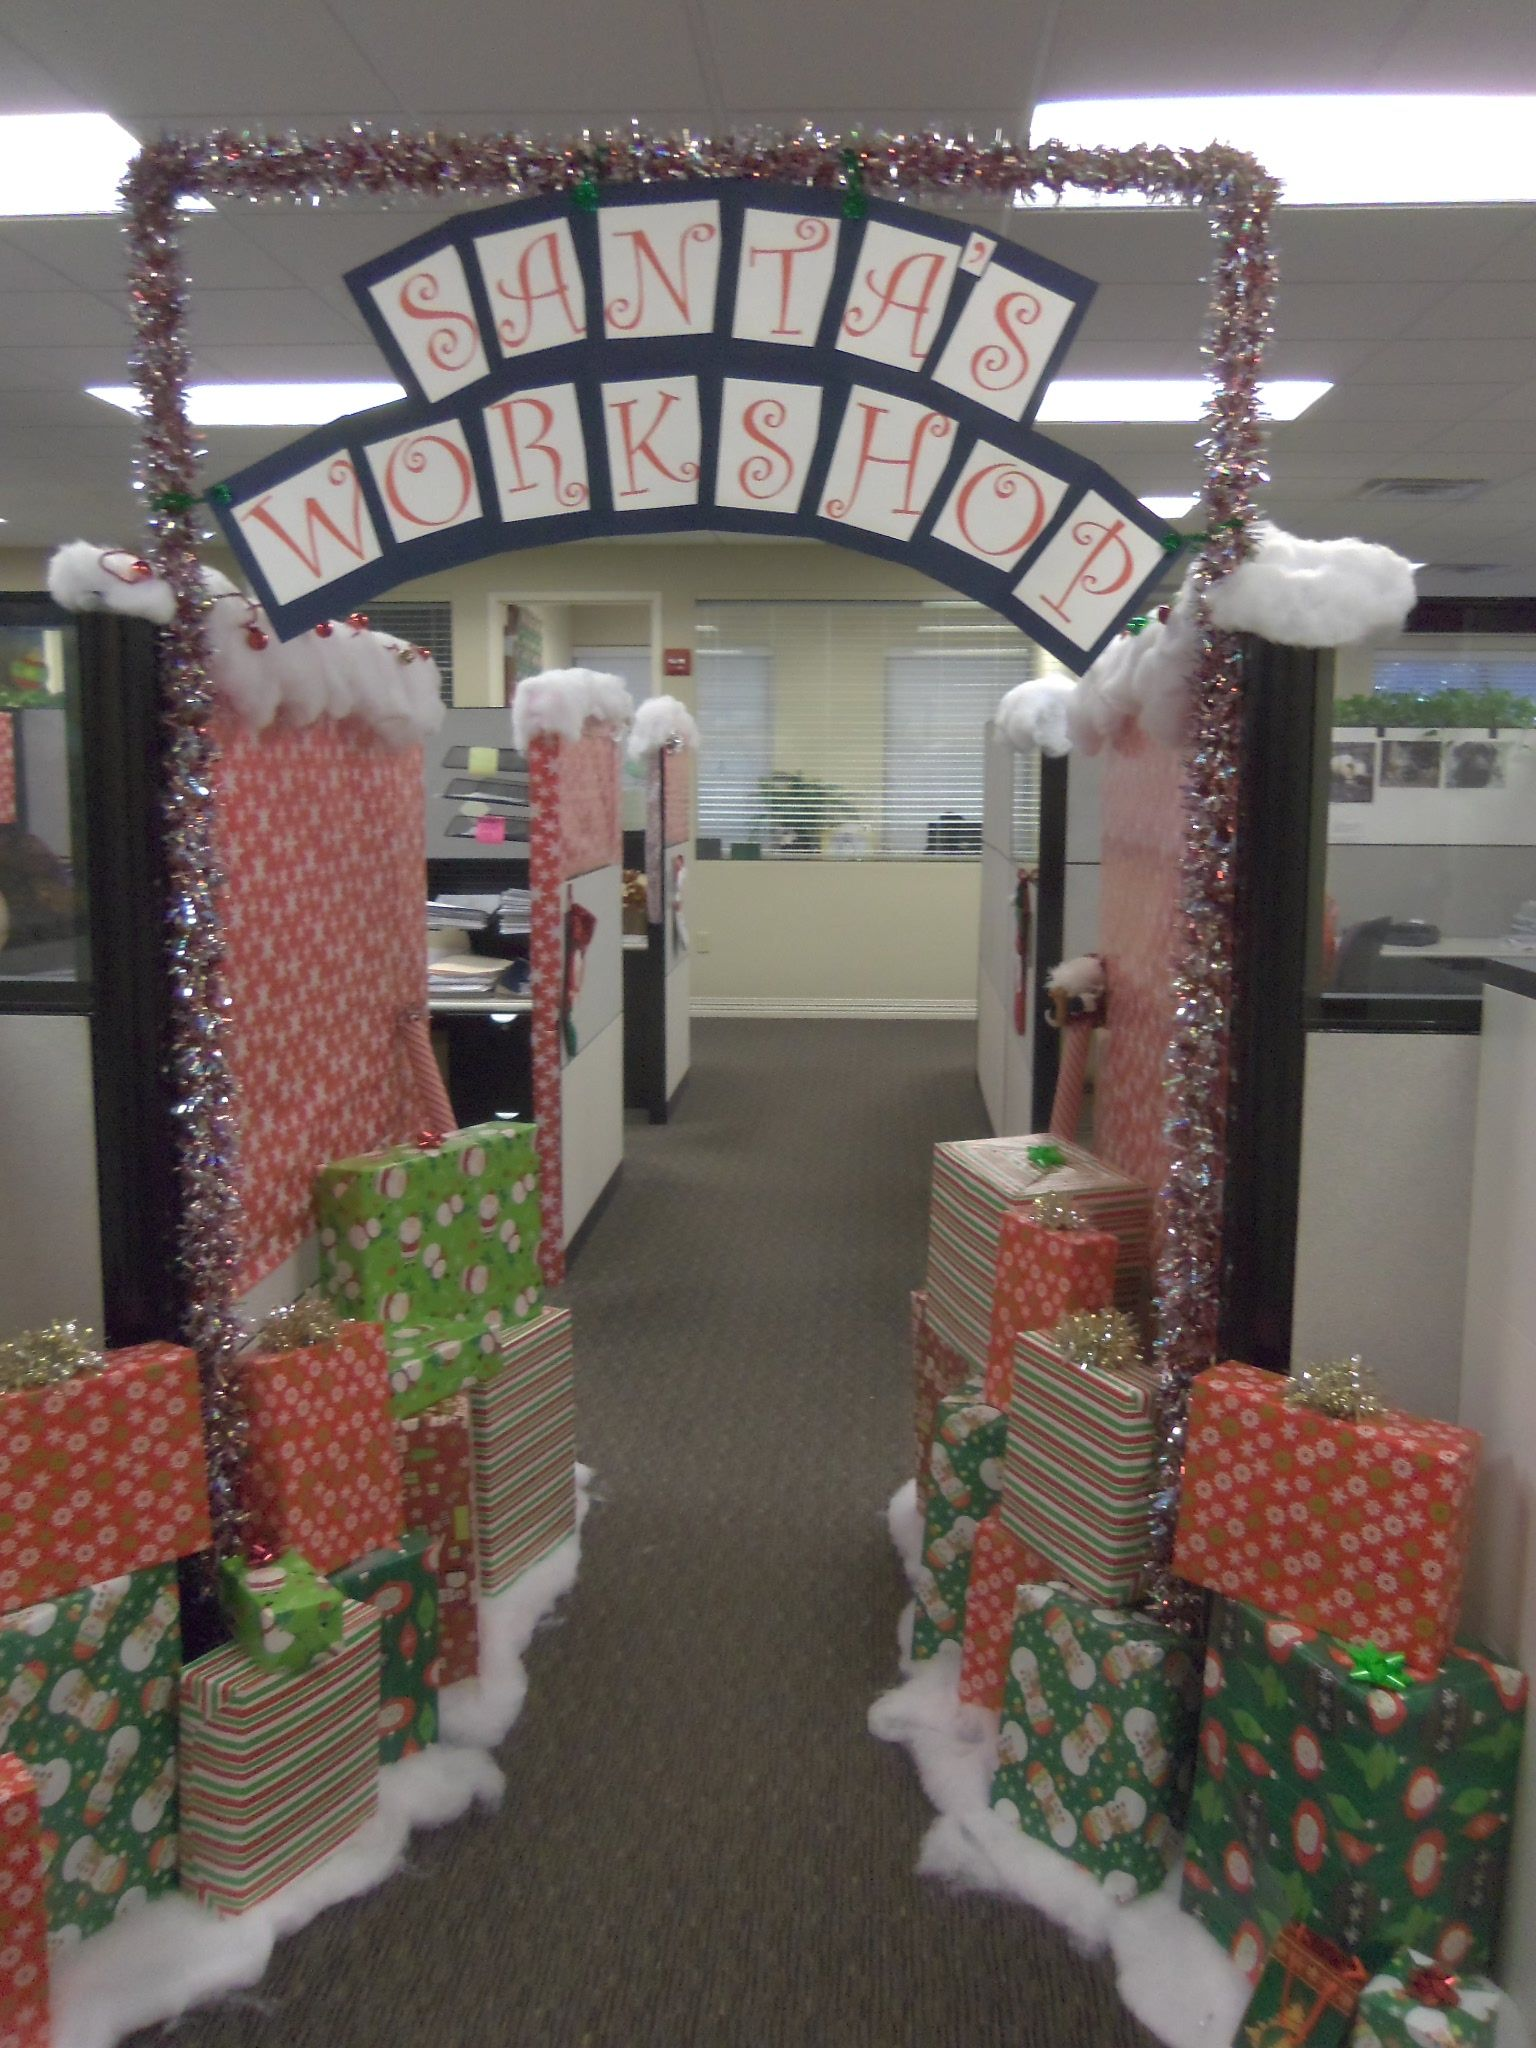 christmas decorations can boost morale at the office leland management embraces the season and encourages the holiday spirit - Office Christmas Decorating Contest